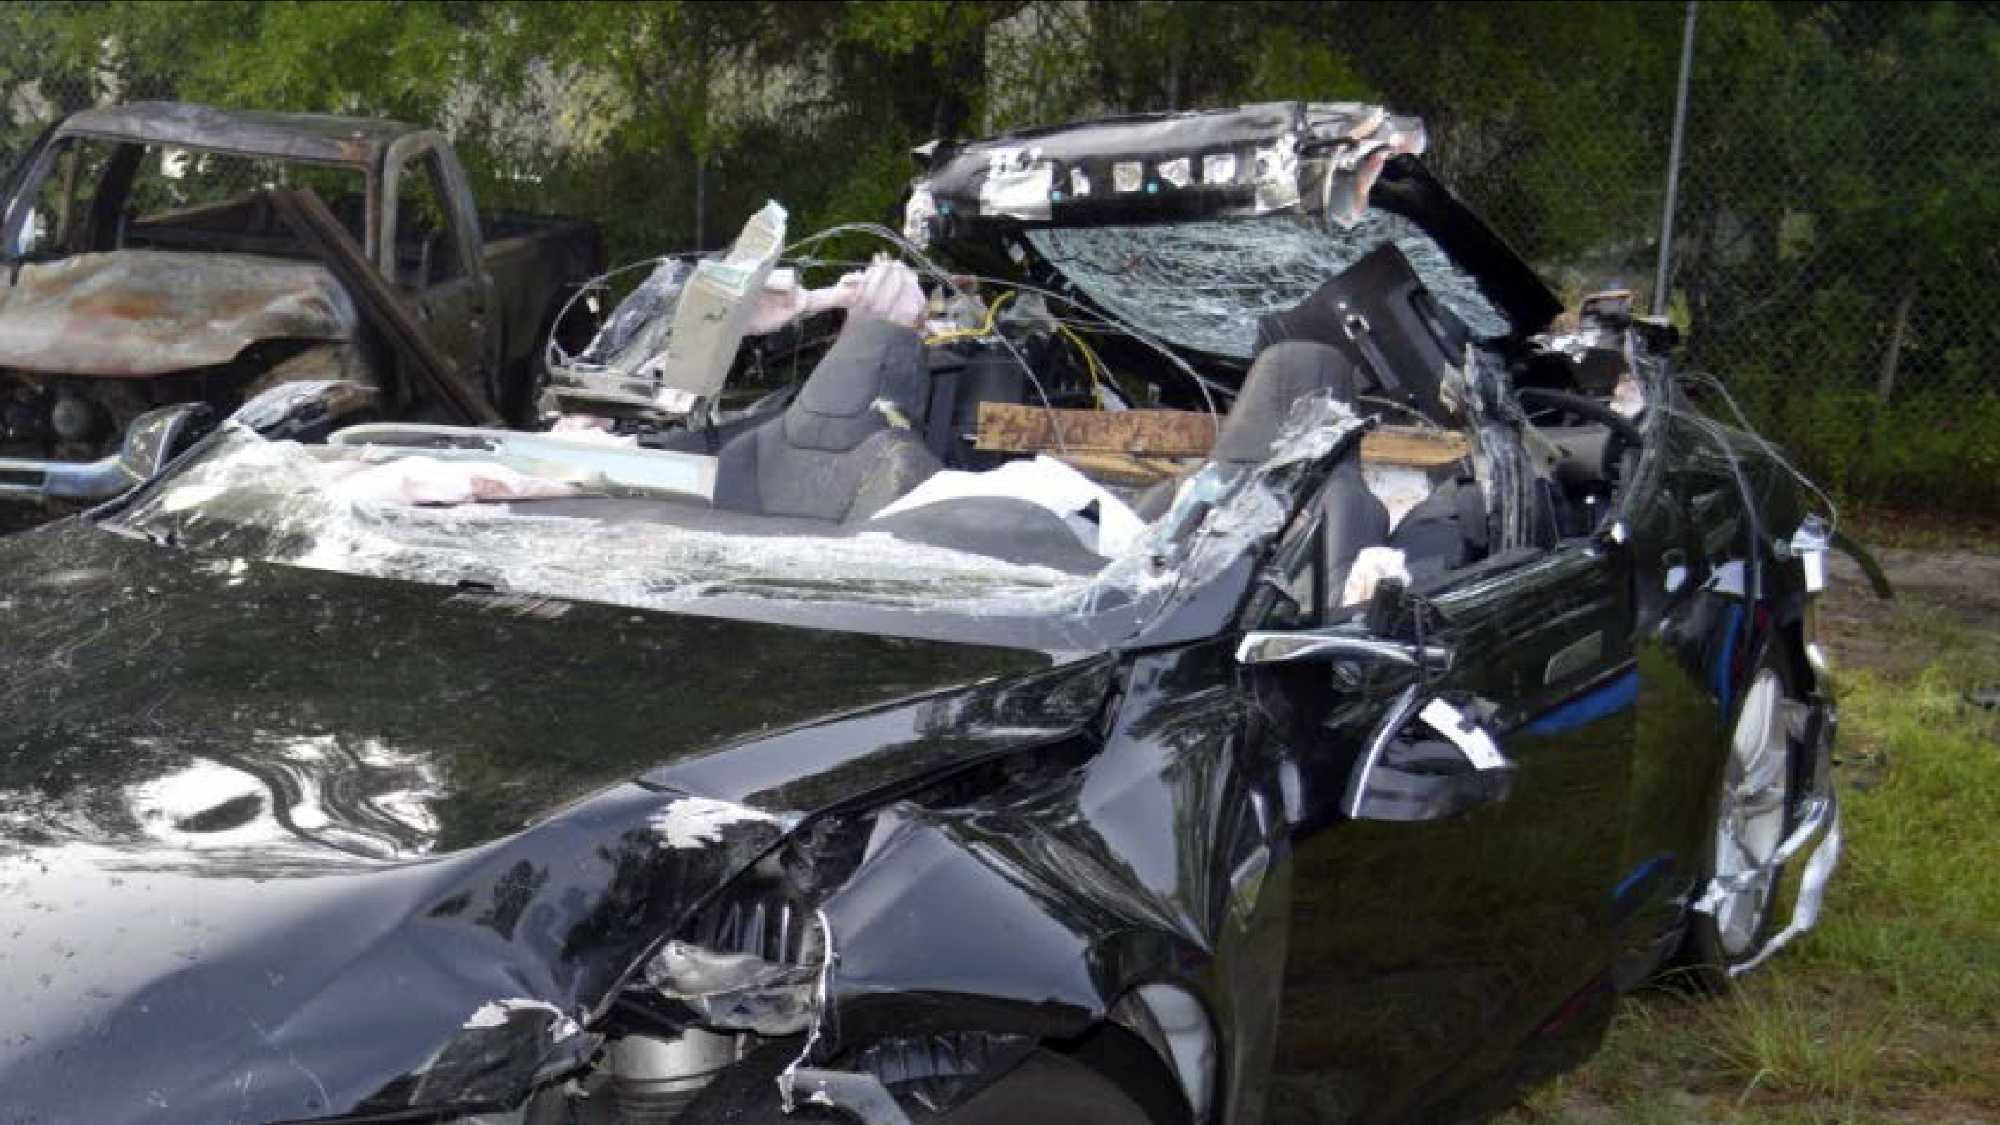 This photo provided by the NTSB via the Florida Highway Patrol shows the Tesla Model S that was being driven by Joshua Brown,who was killed, when the Tesla sedan crashed while in self-driving mode on May 7, 2016.